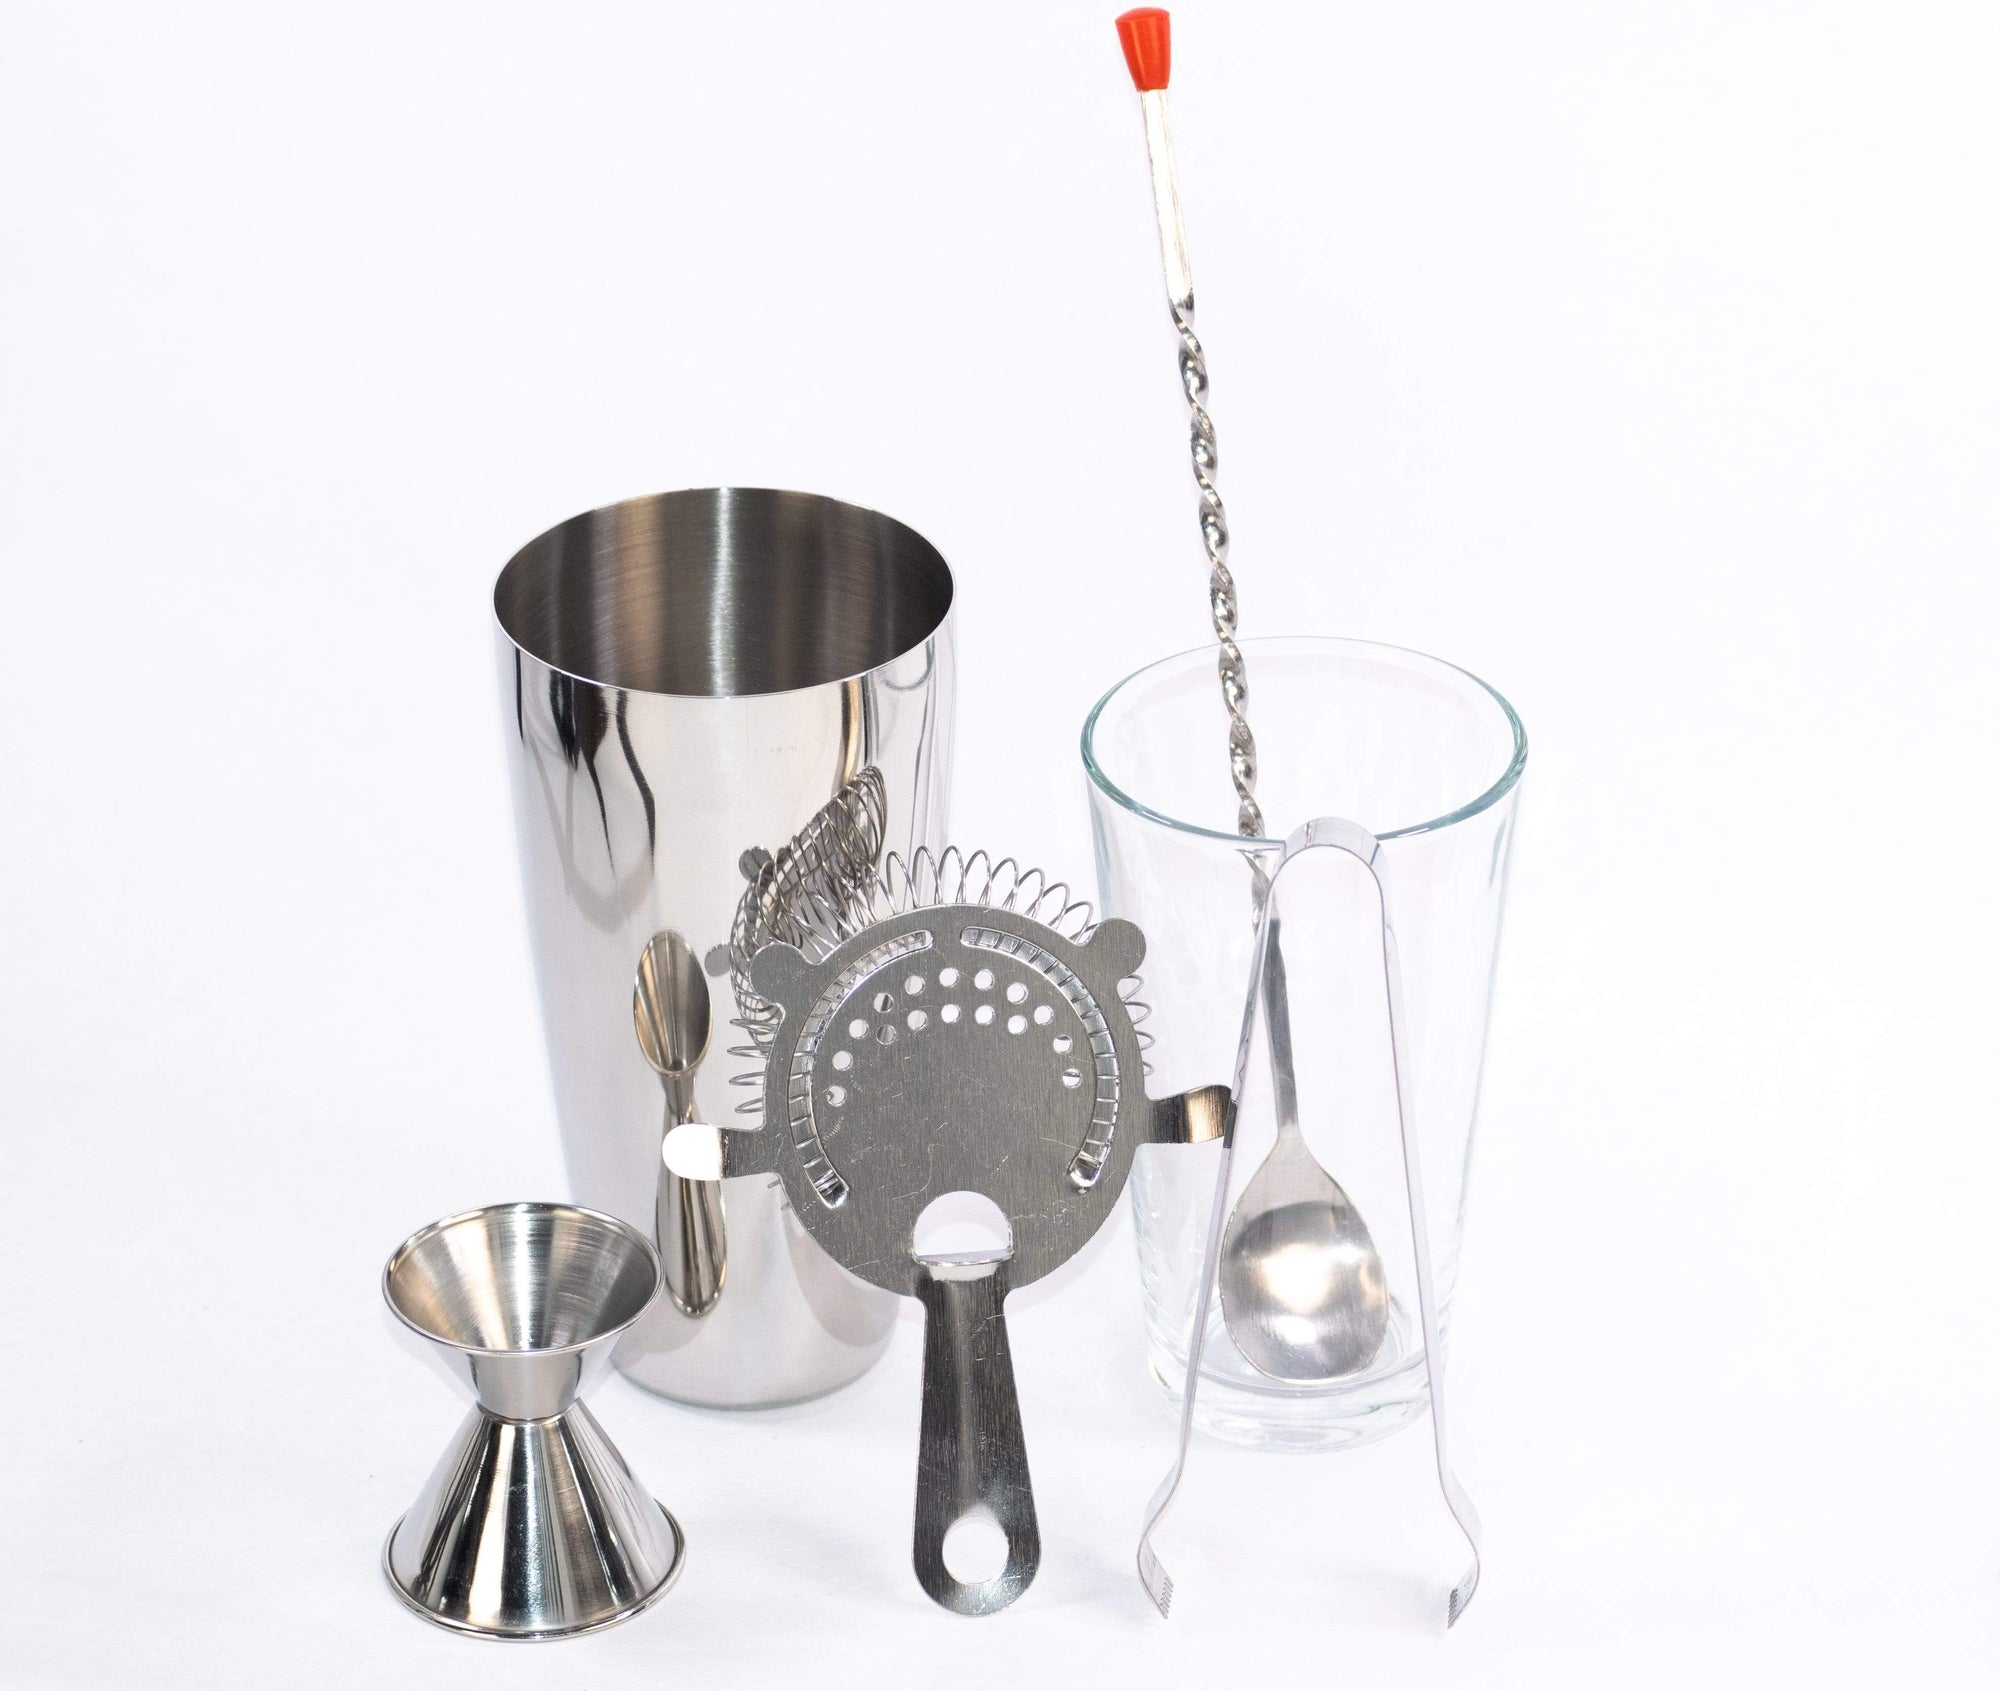 Minimalist cocktail kit featuring strainer, cocktail spoon, jigger, shaker, and ice tongs including everything you need to make all your favorite cocktails at home